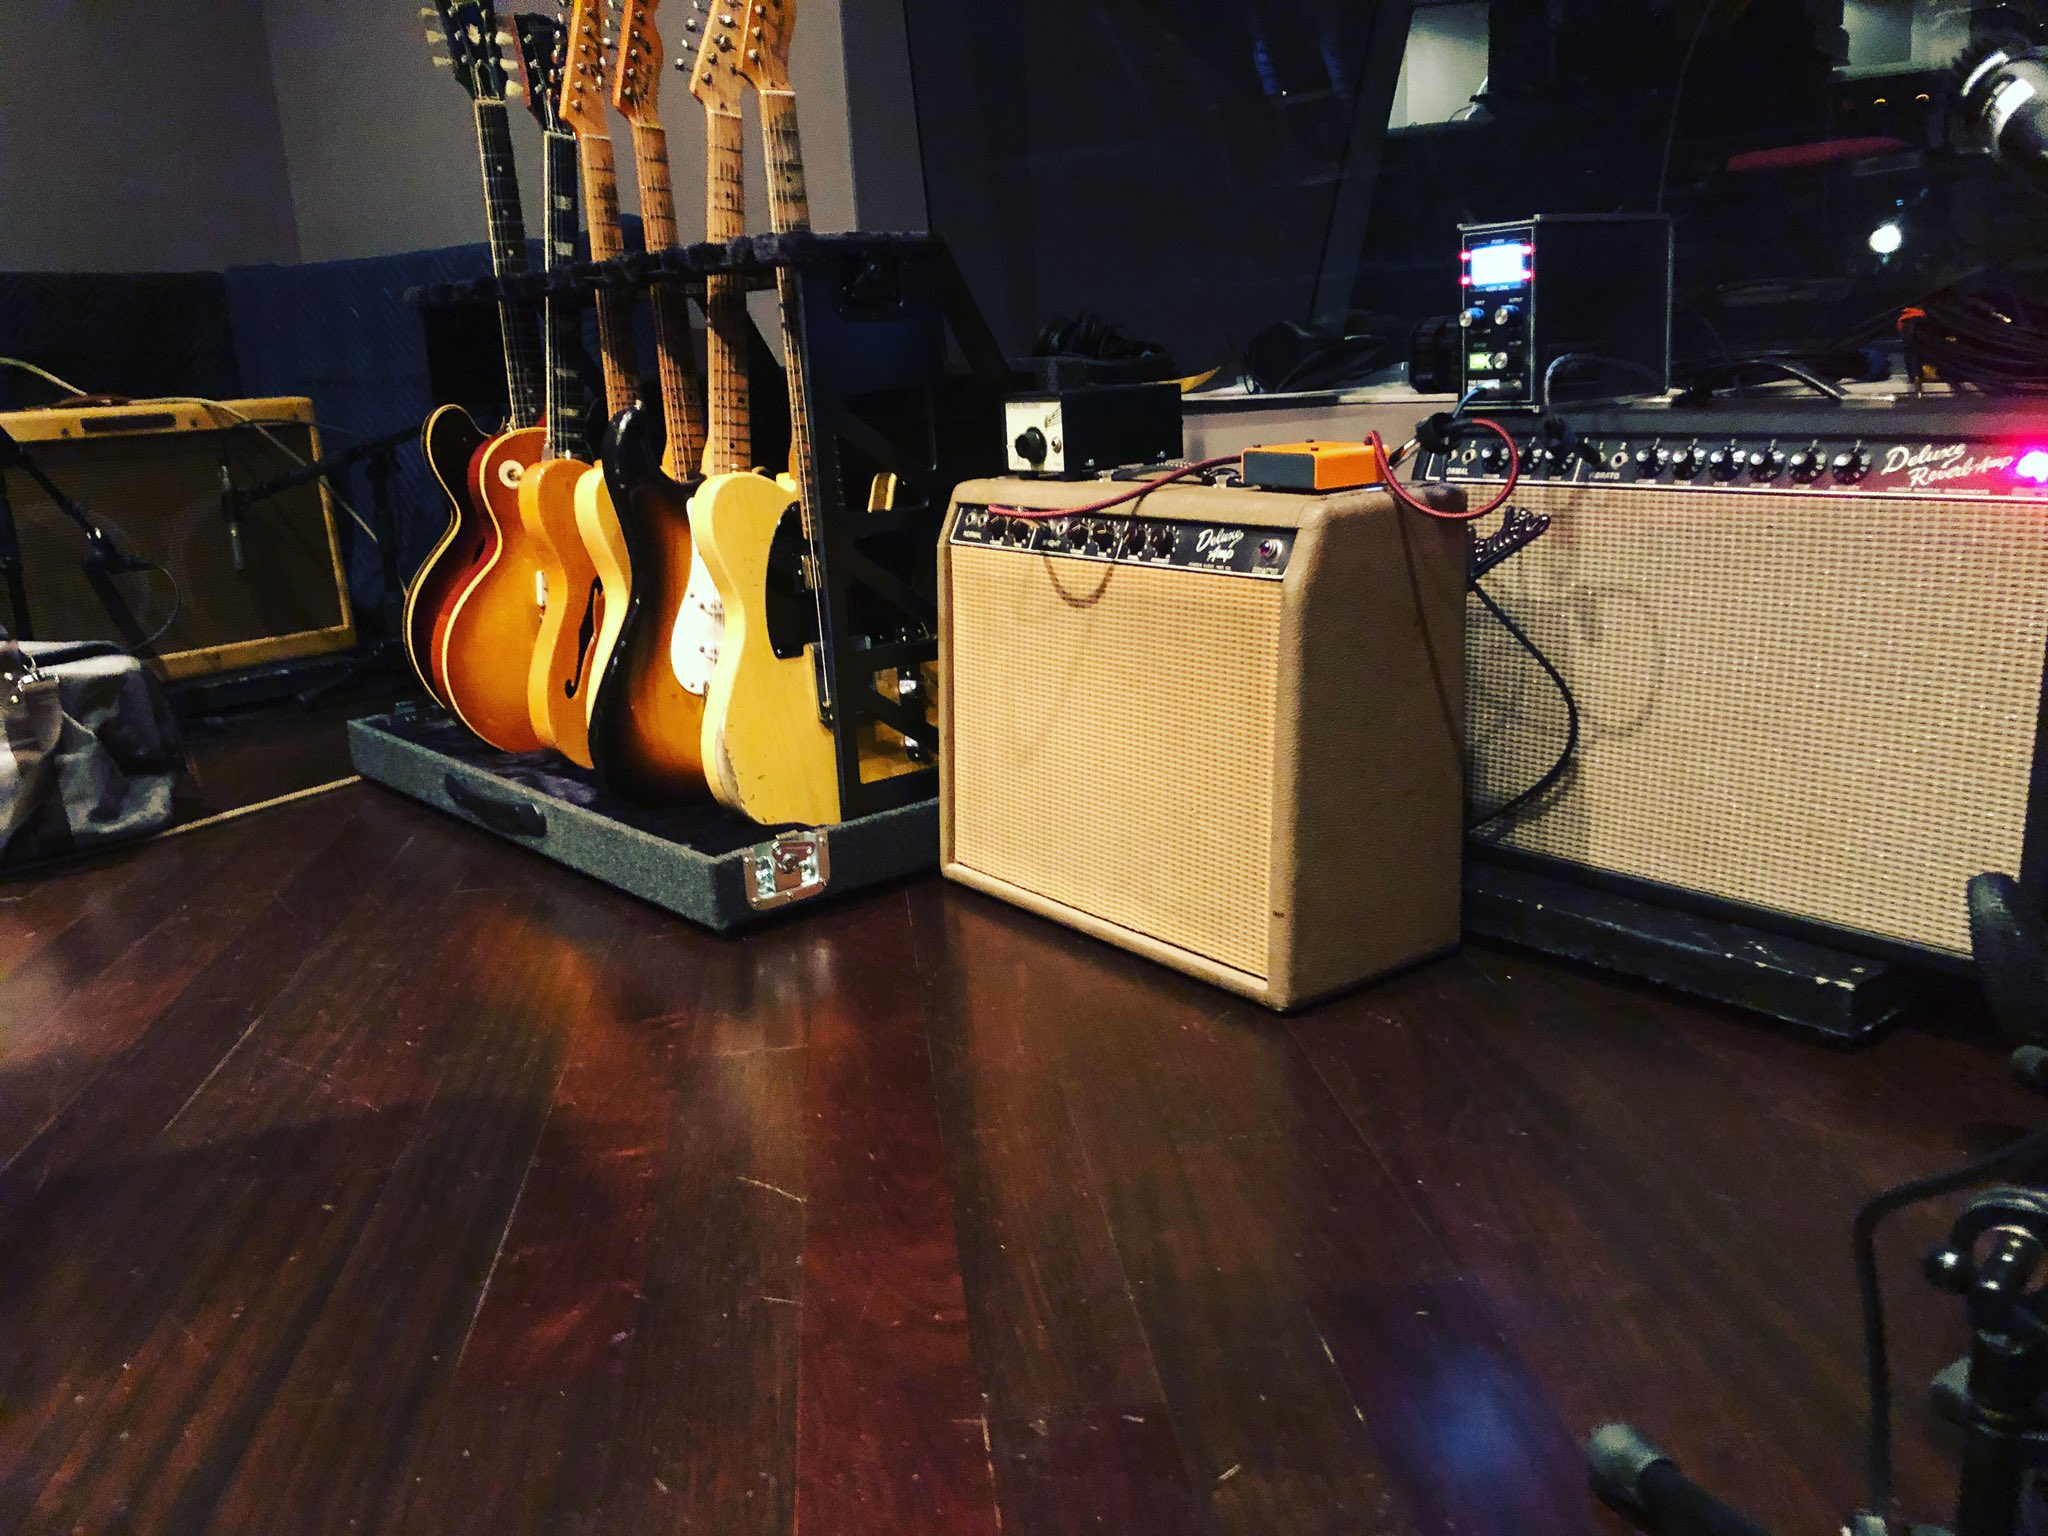 New record starts tomorrow in New York.  All amps set for stun. 😎👍 https://t.co/sJcCkiB4pq